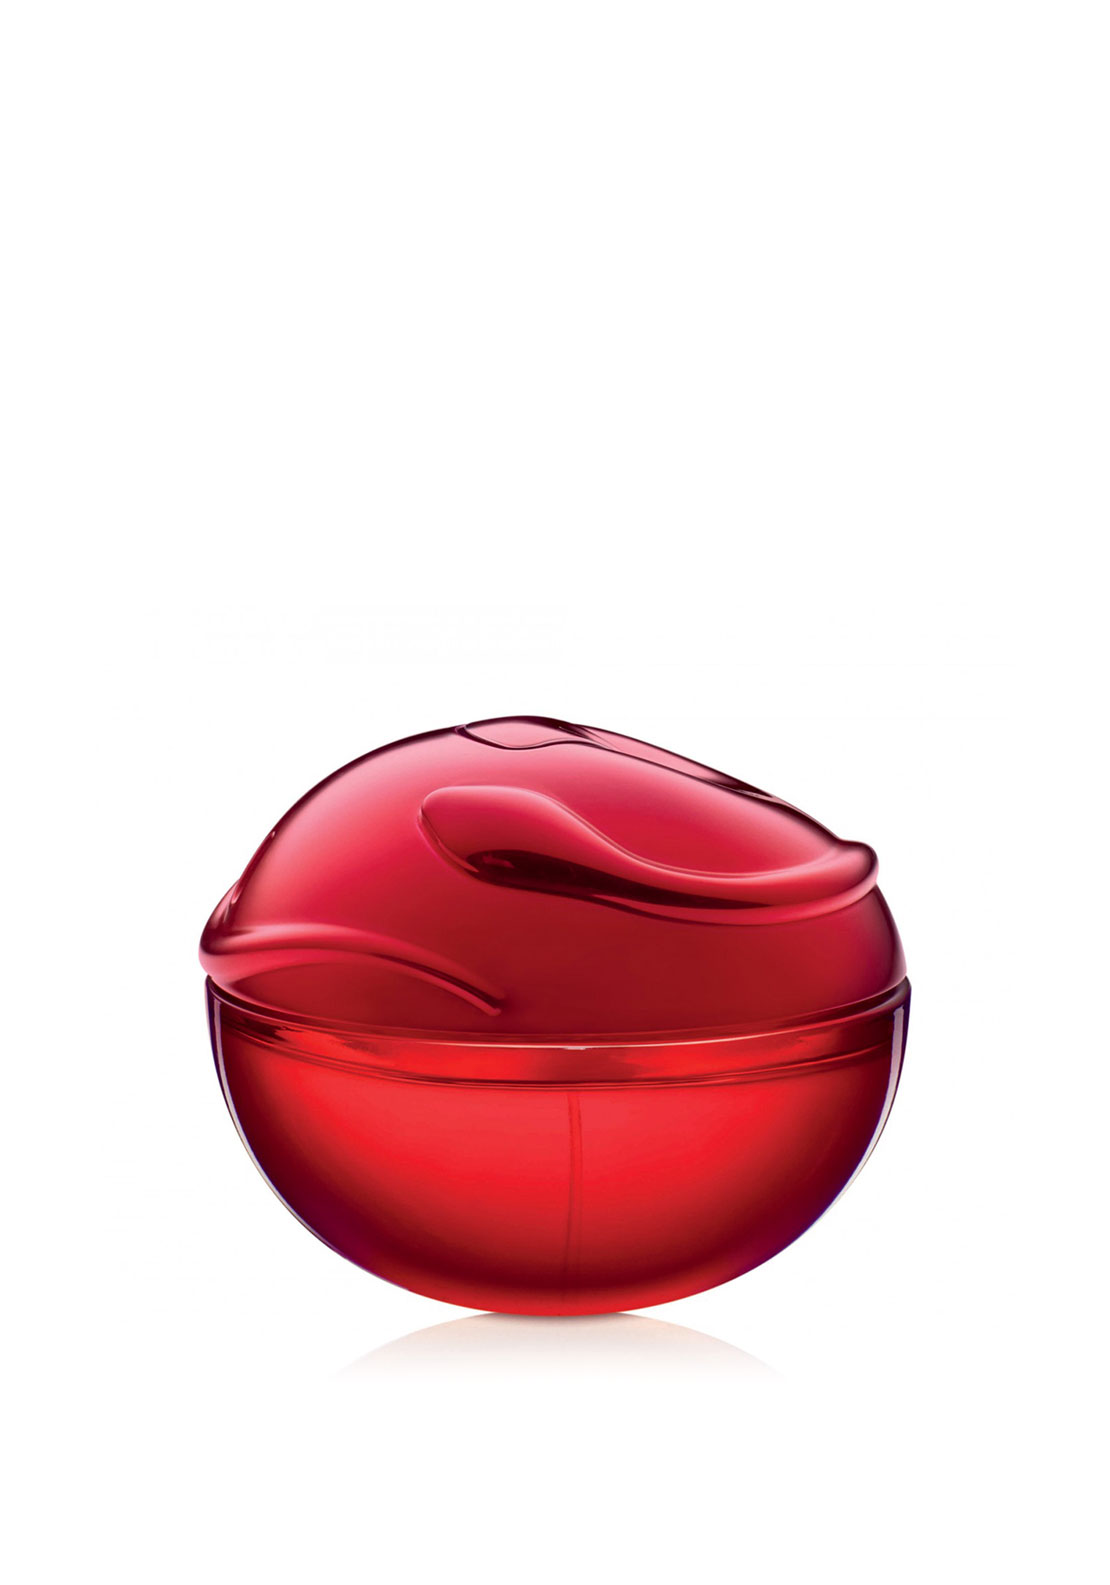 DKNY Be Tempted Eau De Parfum,30ml